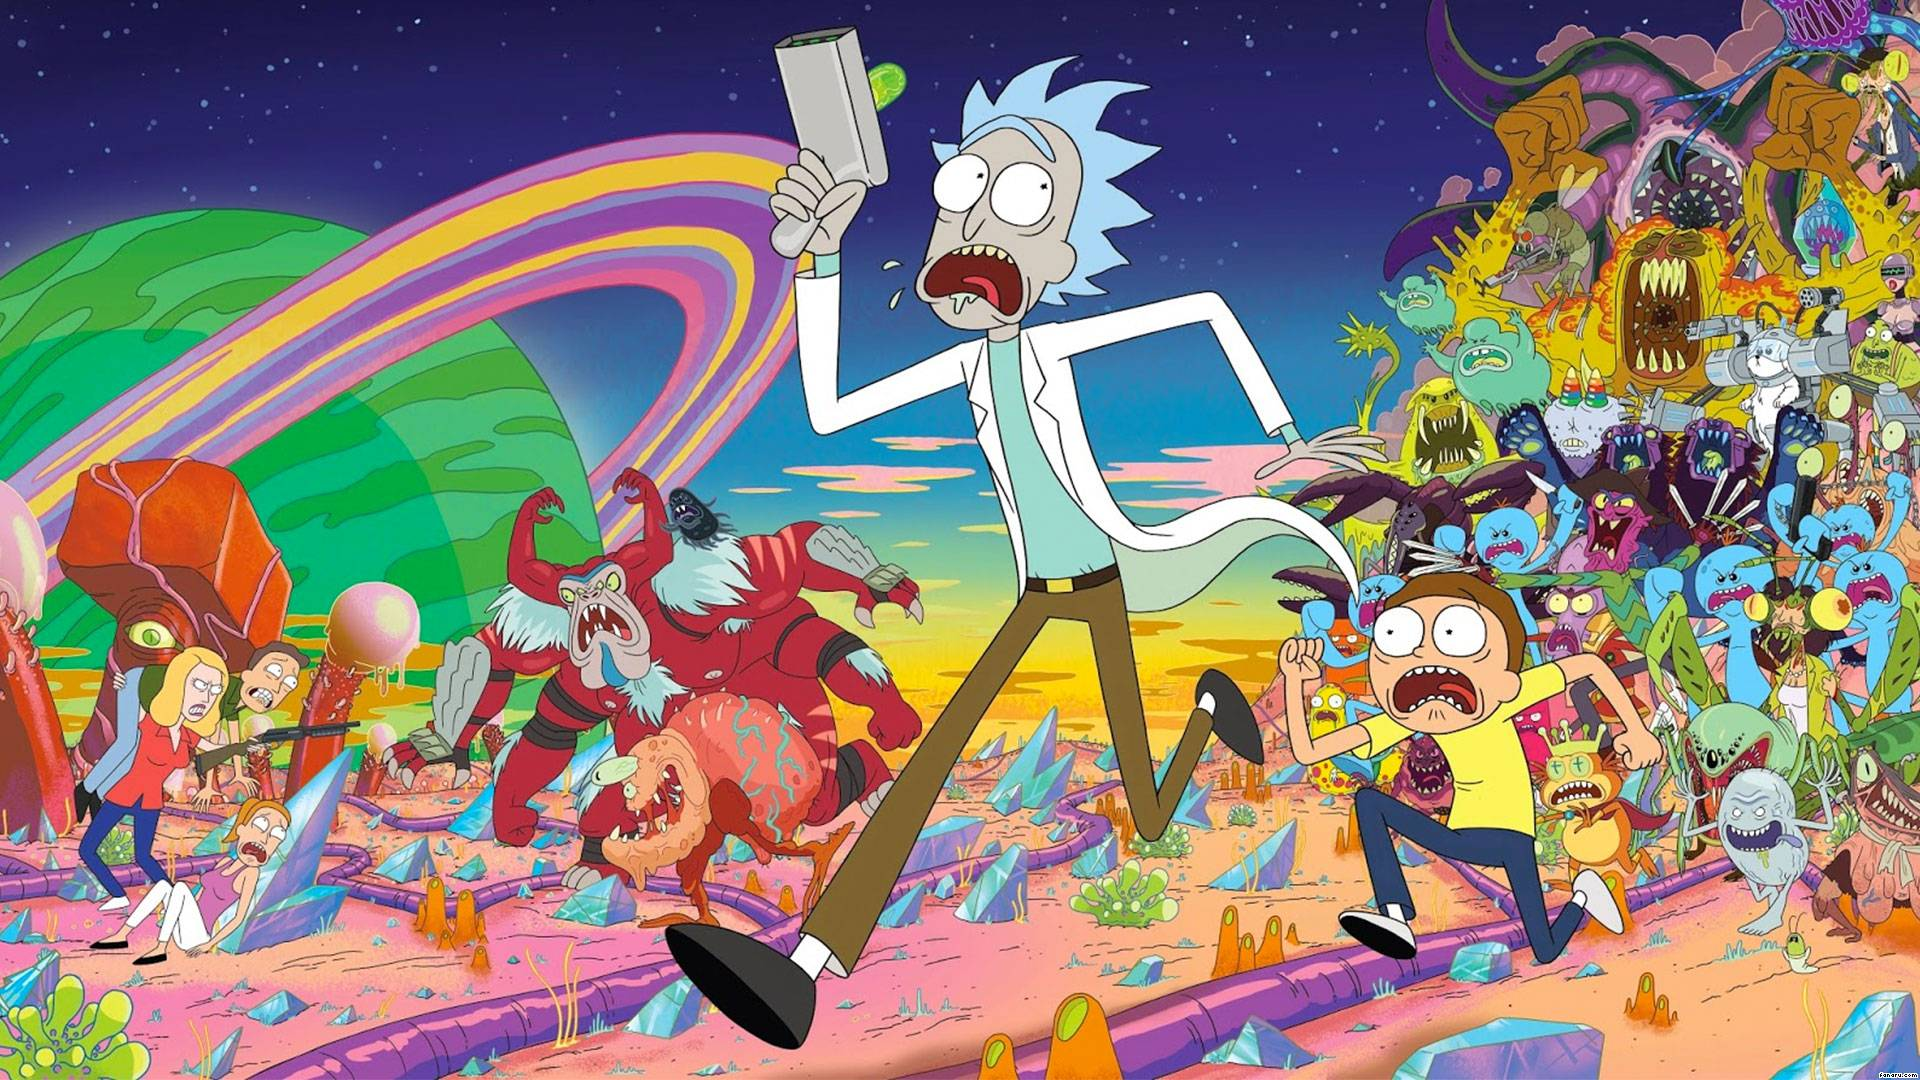 Rick y Morty: Cuándo estará disponible el capítulo 8 de la temporada 4